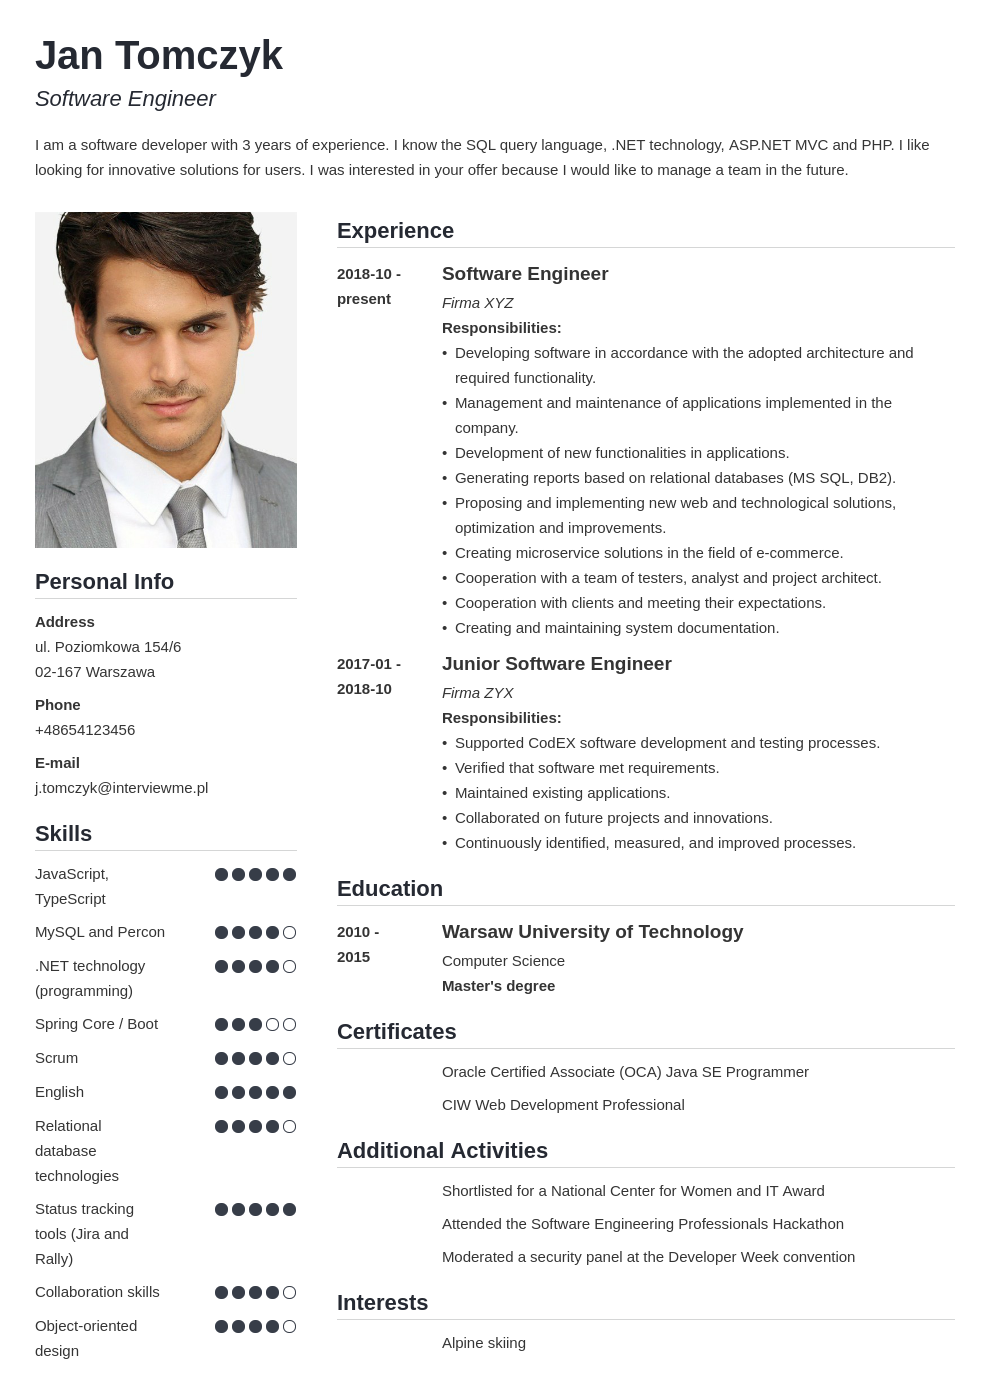 cv po angielsku template simple